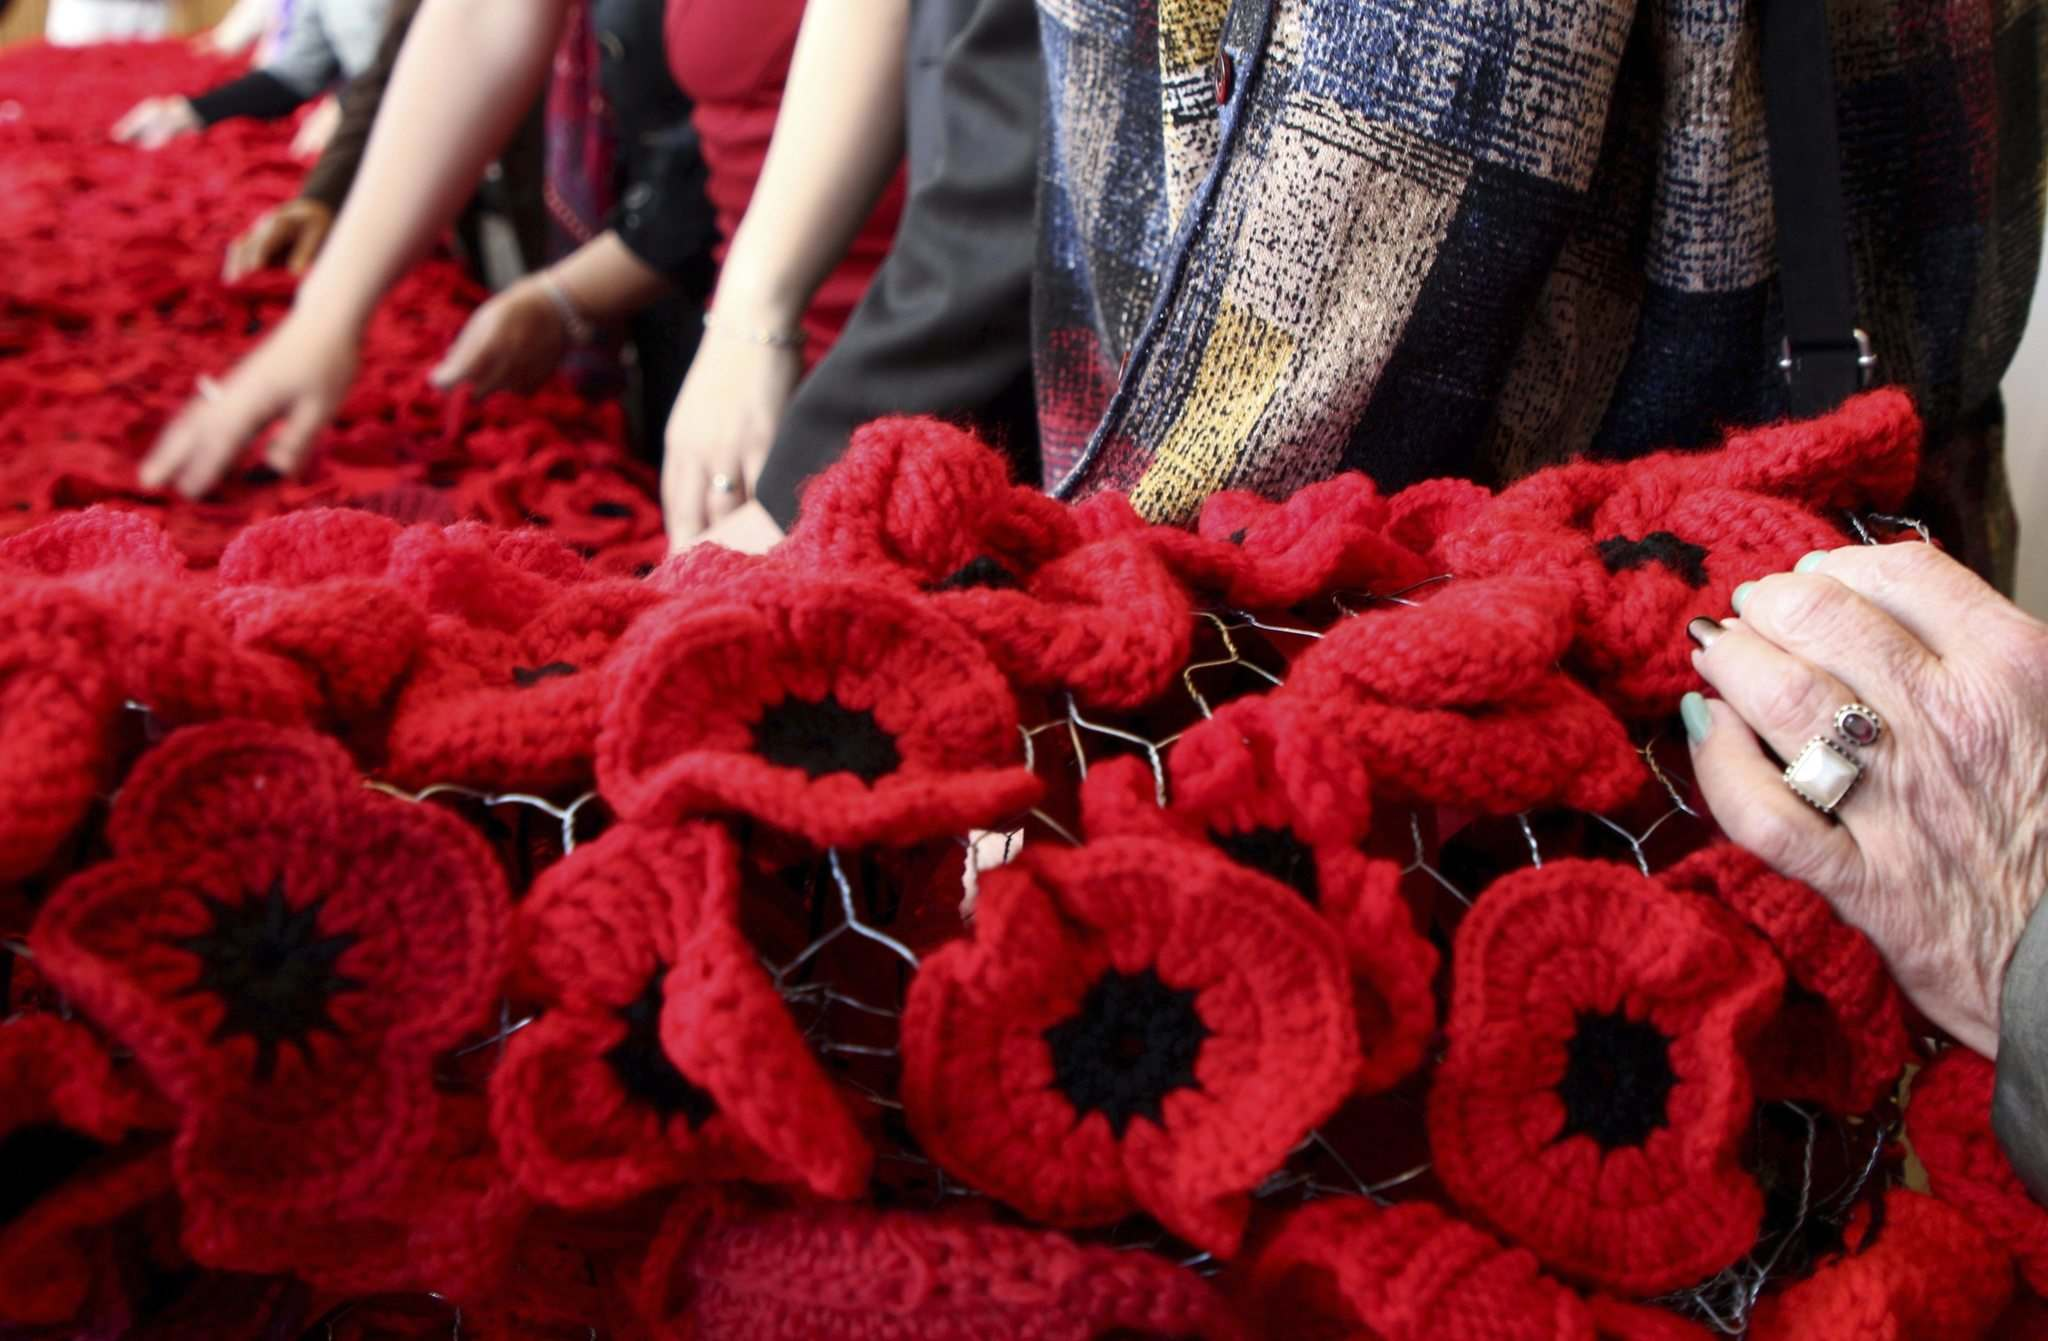 Volunteers who worked on the Poppy Blanket Project admire the memorial — an 85-foot-long blanket of handmade poppies during the blanket's unveiling at Winnipeg City Hall, Thursday.